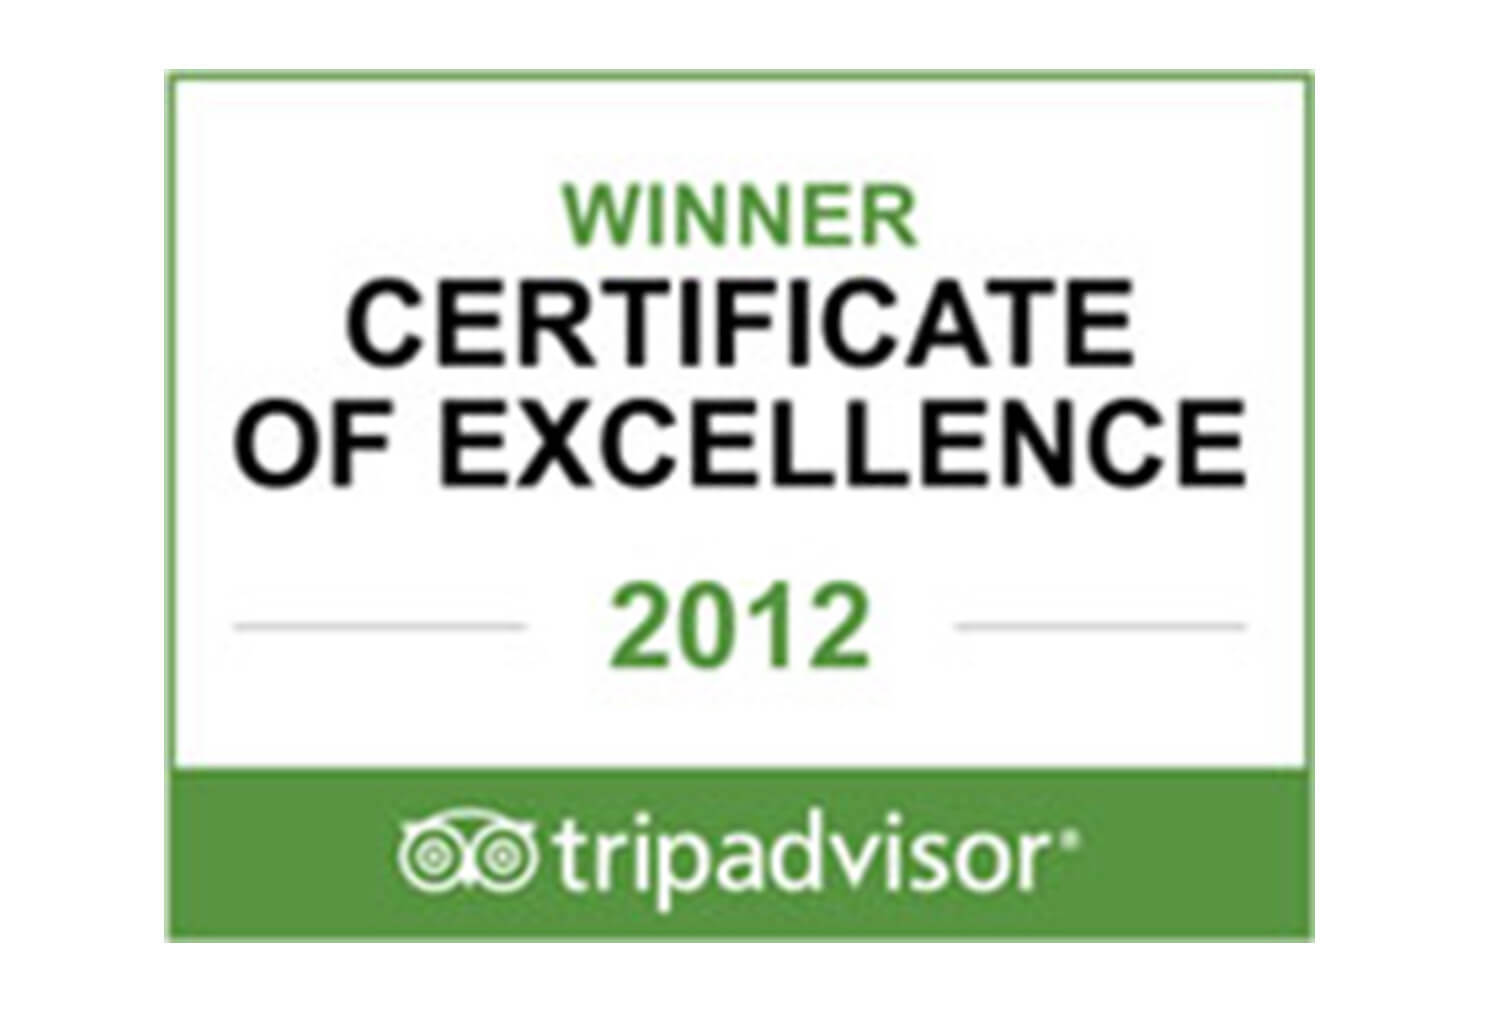 2012 Certificate of Excellence Winner, Tripadvisor | Westgate Resorts